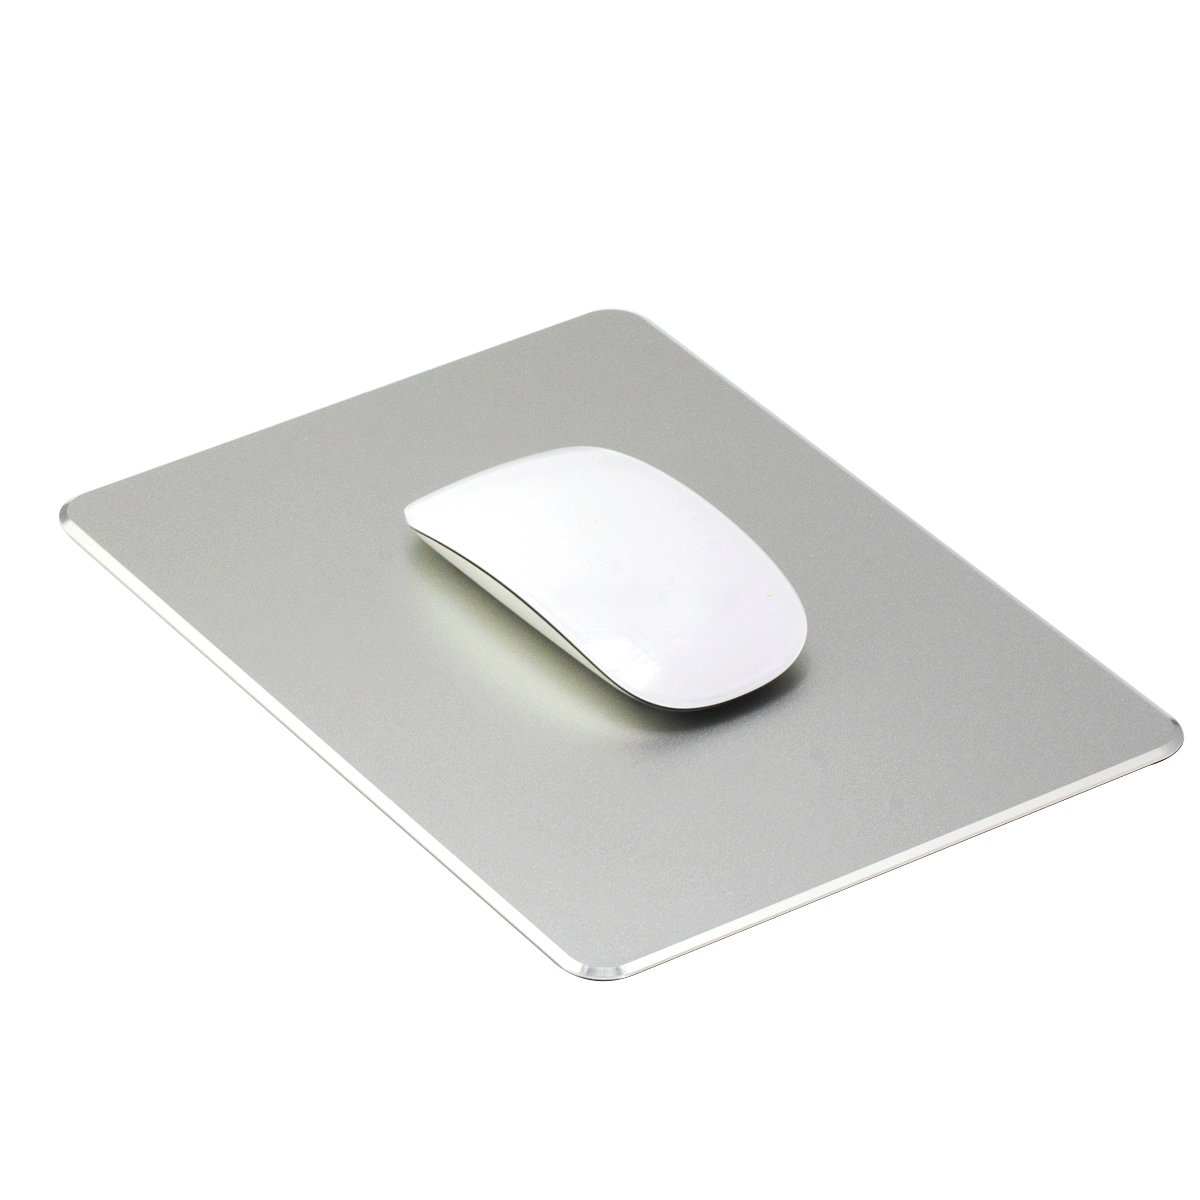 Ptalor, Aluminum Mouse pad Strong Sensitivity for Mouse,Non-Slip Base,Resistant to Dirt,Easy to Clear,Mouse pad with Micro Sand Blasting Aluminum Surface for Fast and Accurate Control (Silver)